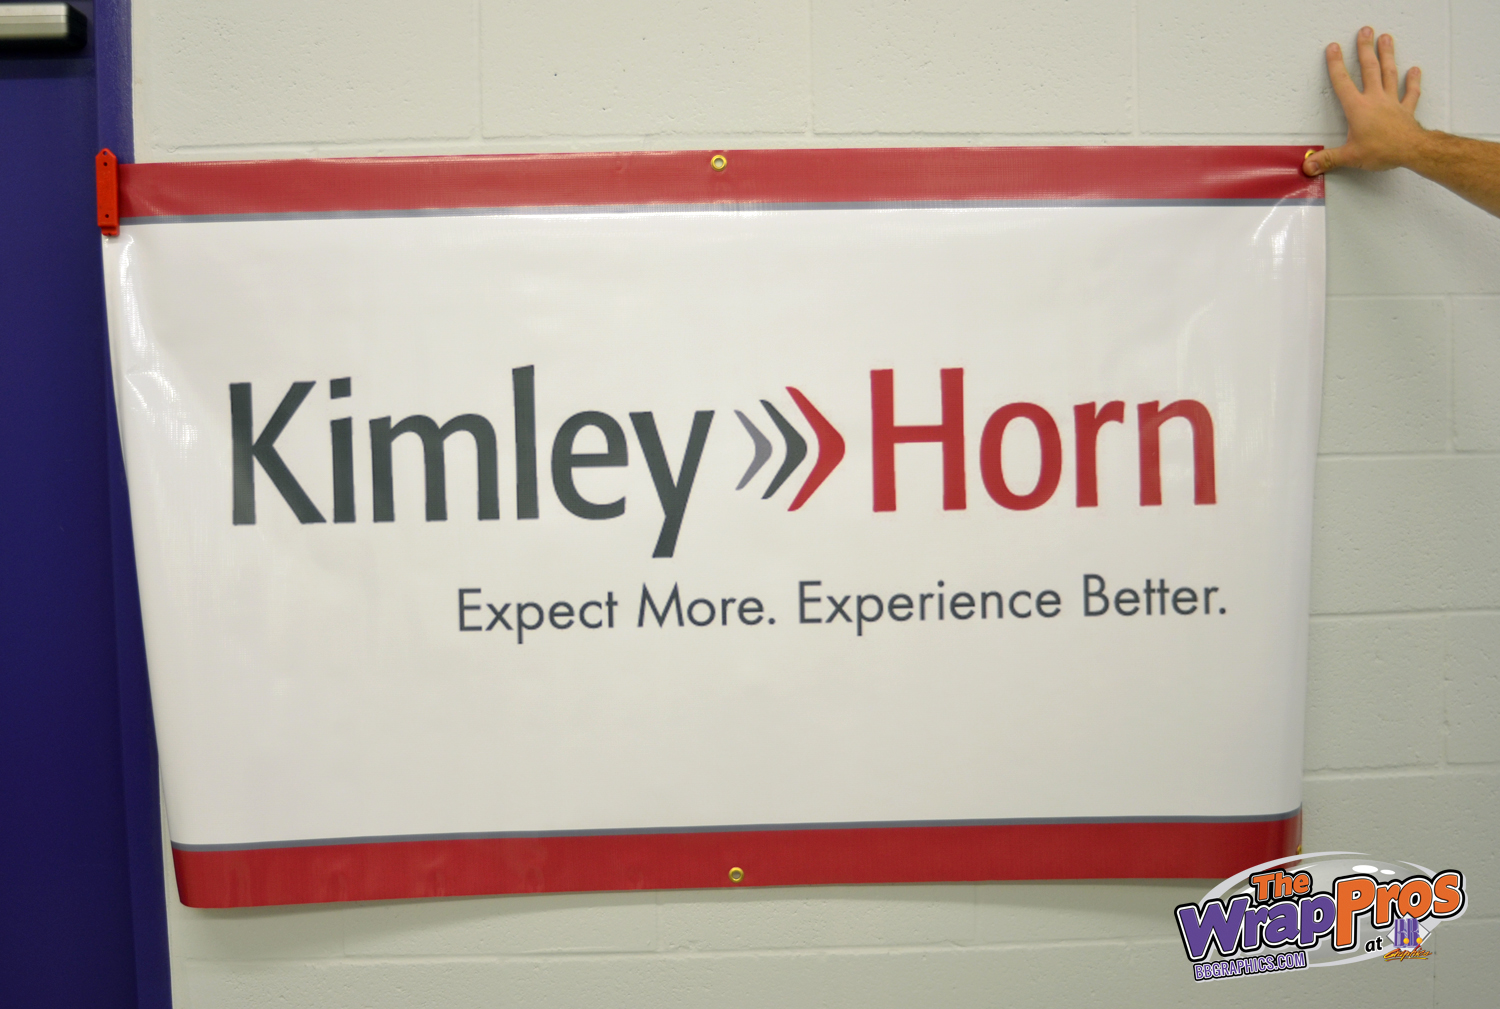 Kimley horn banner bb graphics the wrap pros for Kimley horn